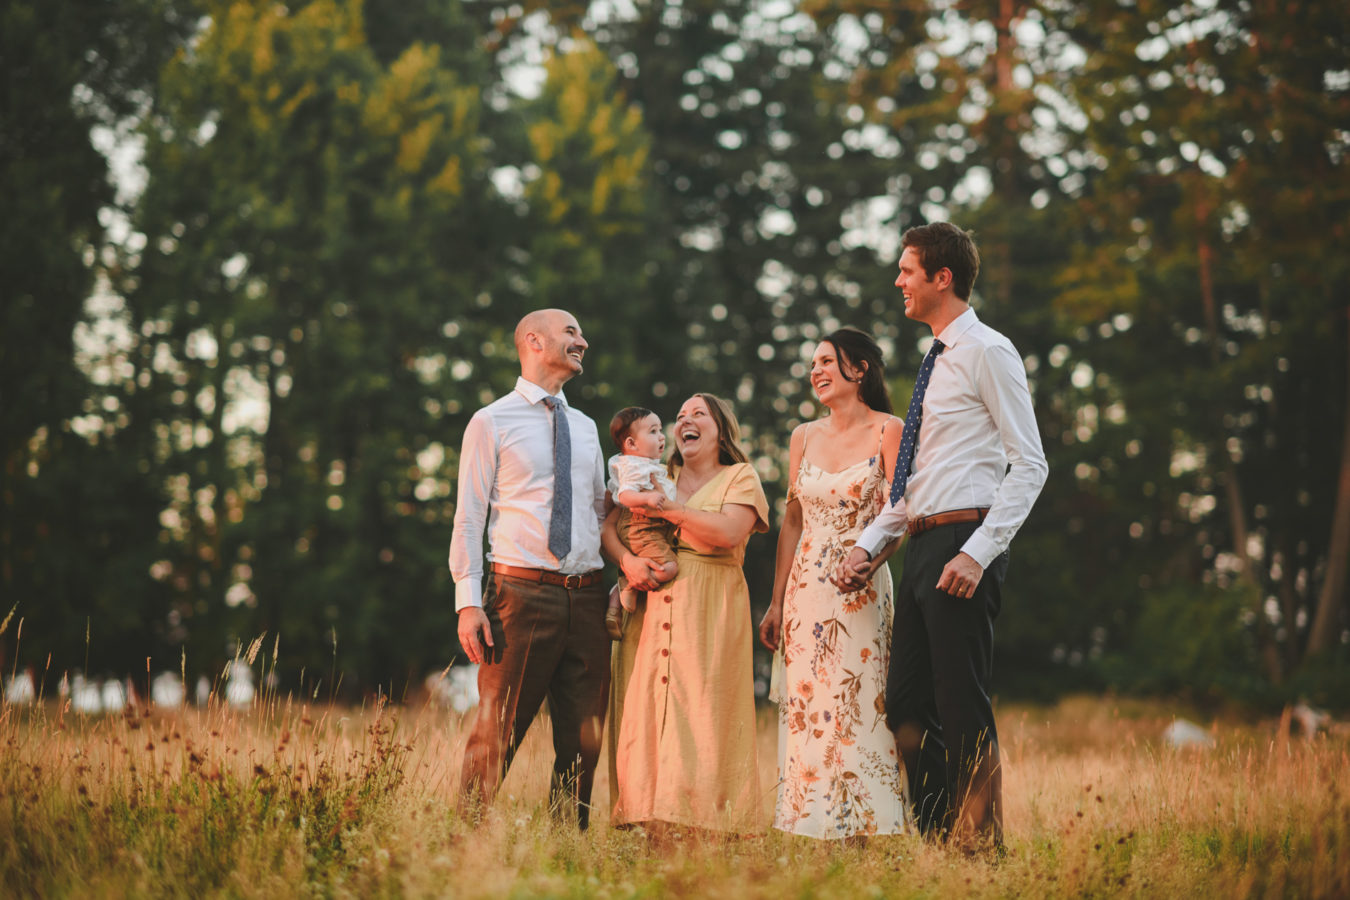 bride, groom and their 2 friends and a baby laughing in a field with the forest behind them